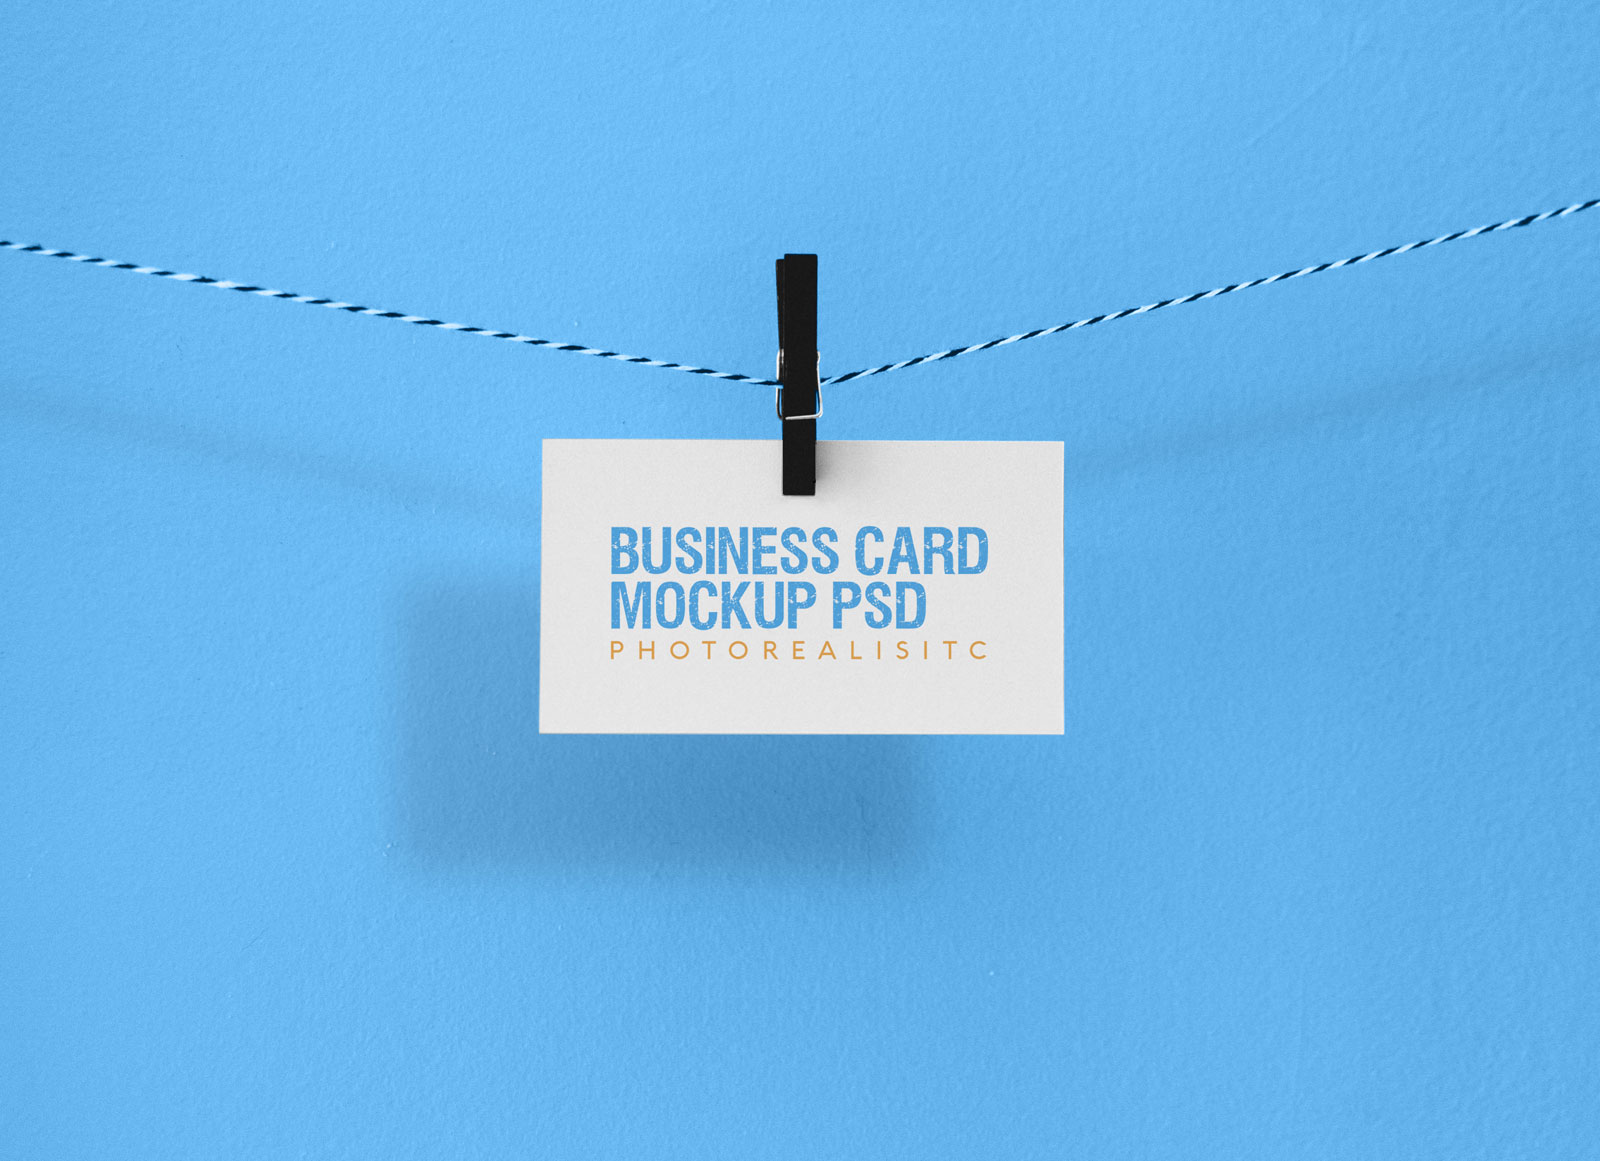 Free-Photorealistic-Business-Card-Mockup-PSD